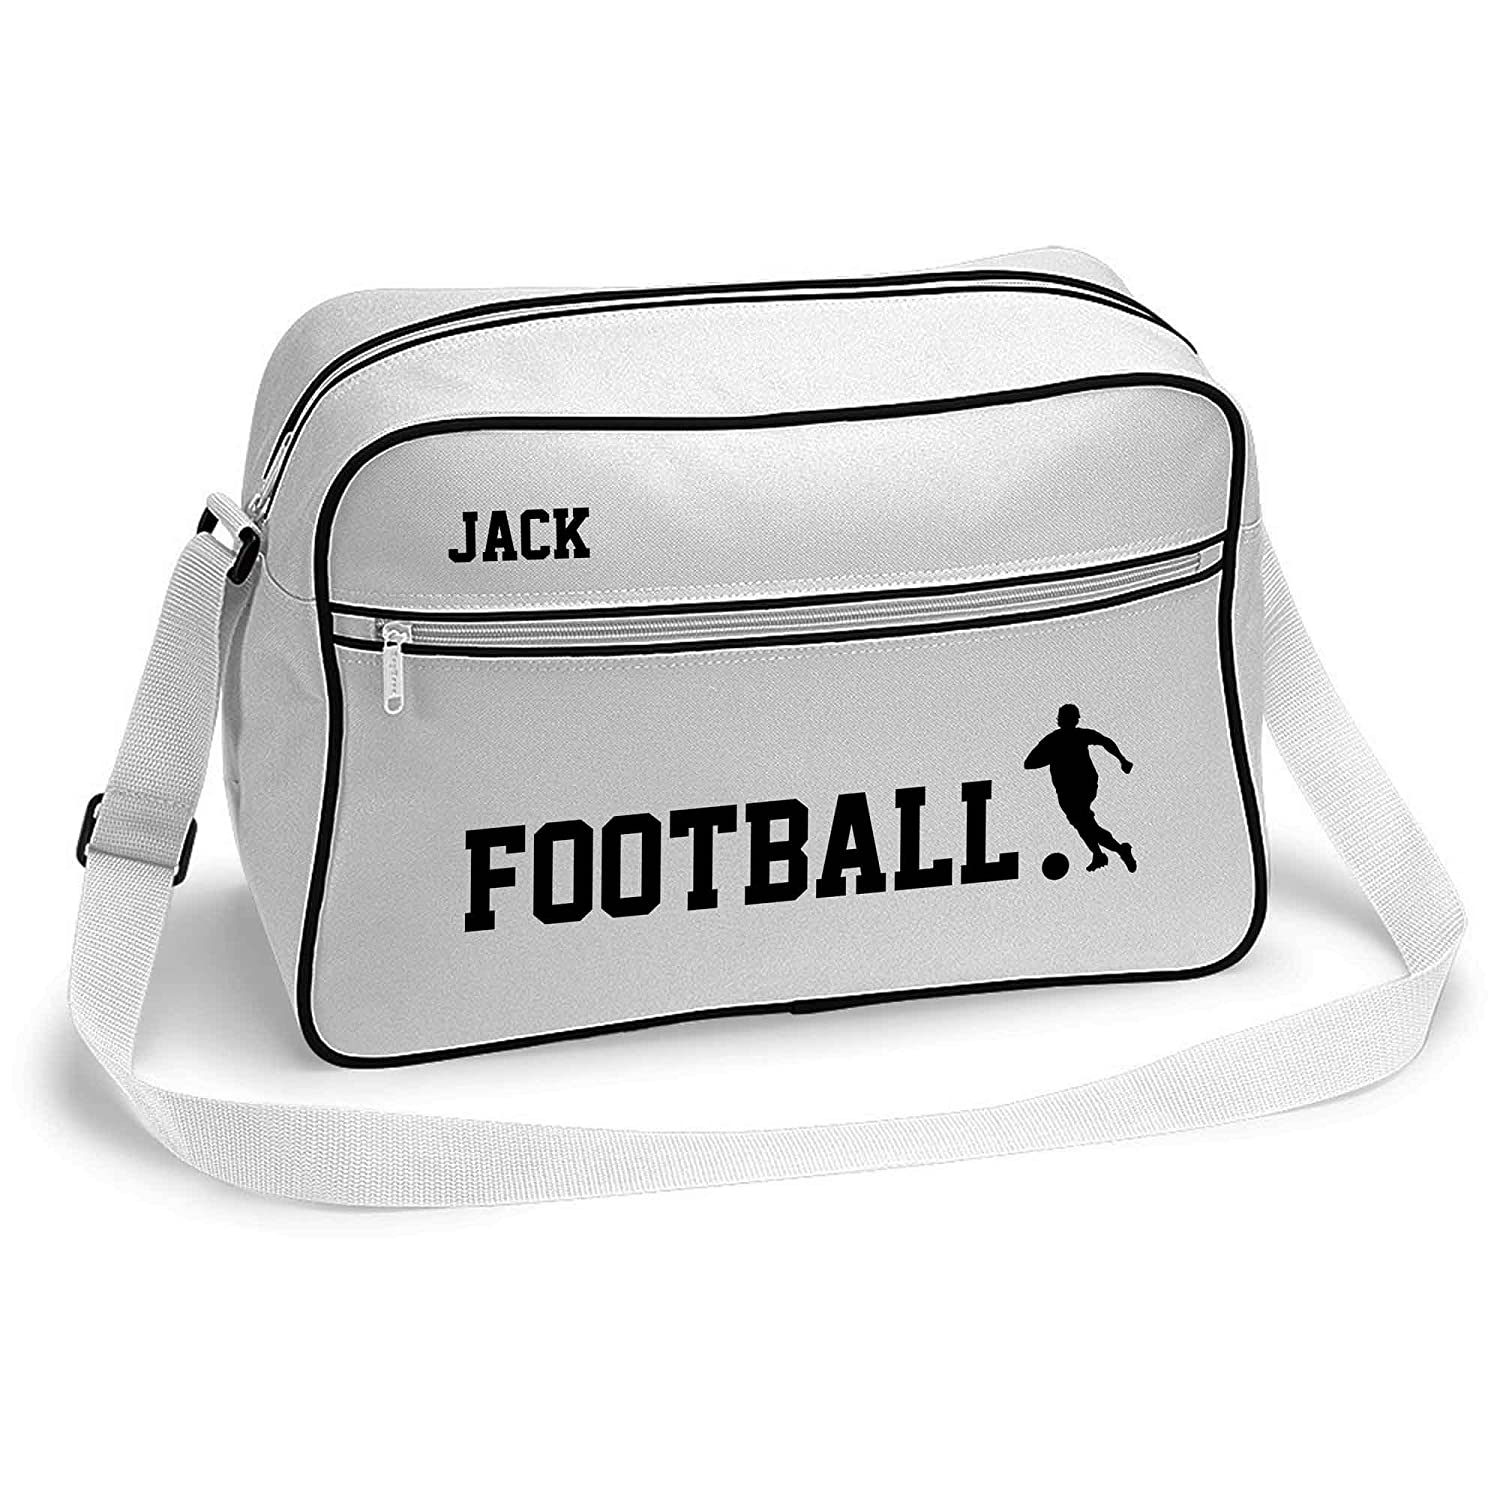 Football Sports Bag Holdall White or Black.Perfect for your Kit. Personalised Free Inspiredcreativedesign